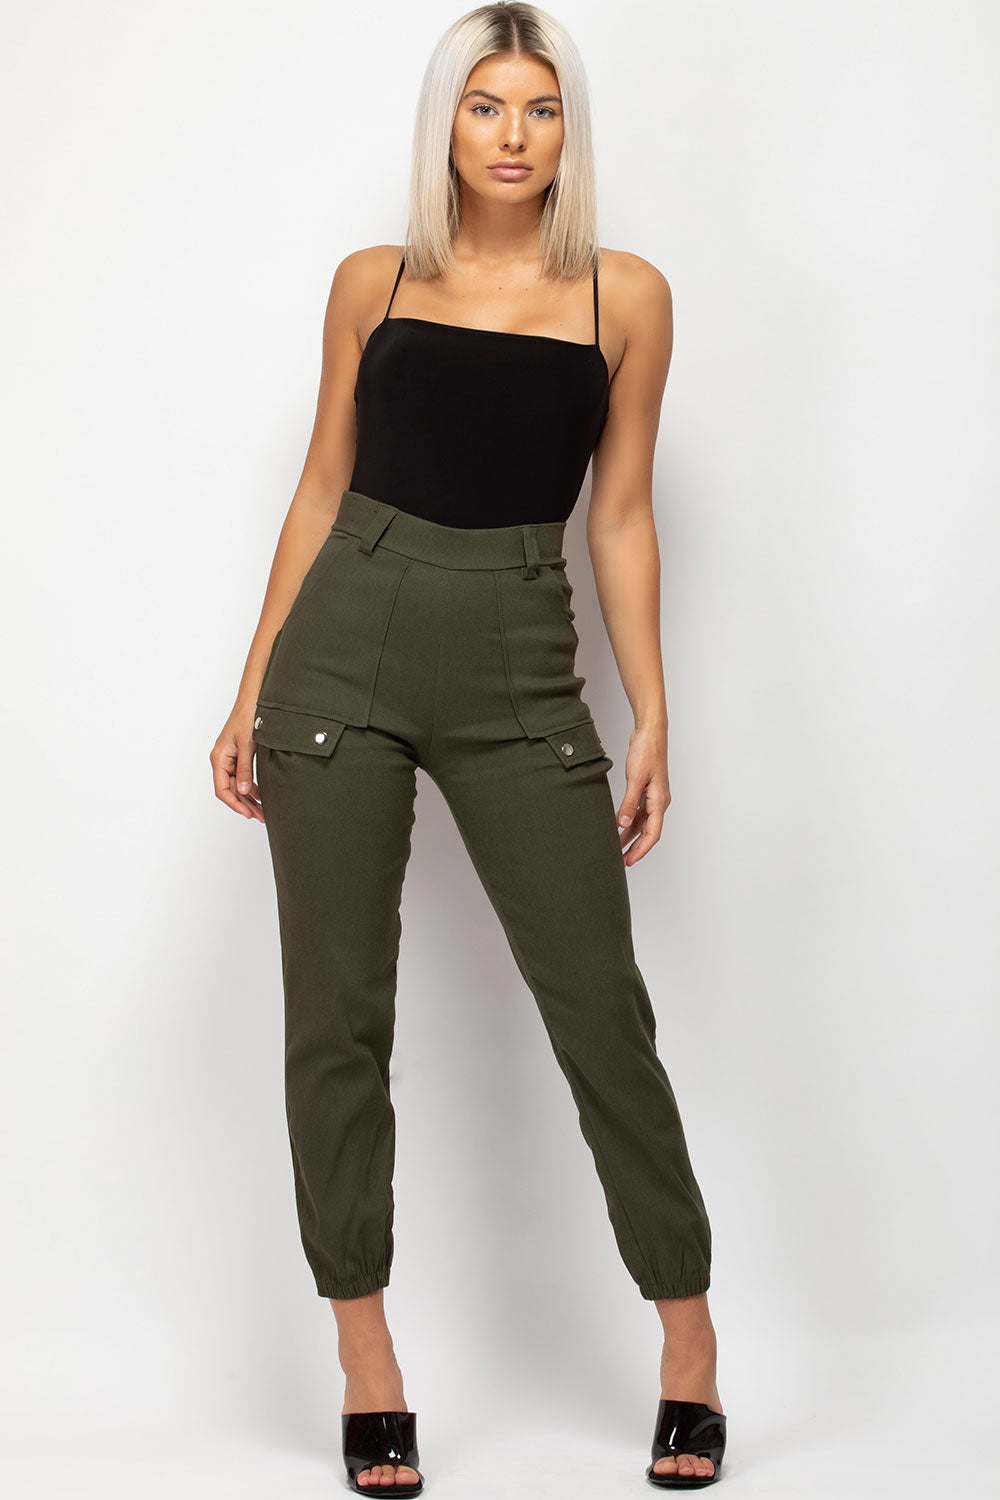 khaki cargo slim fit trousers uk